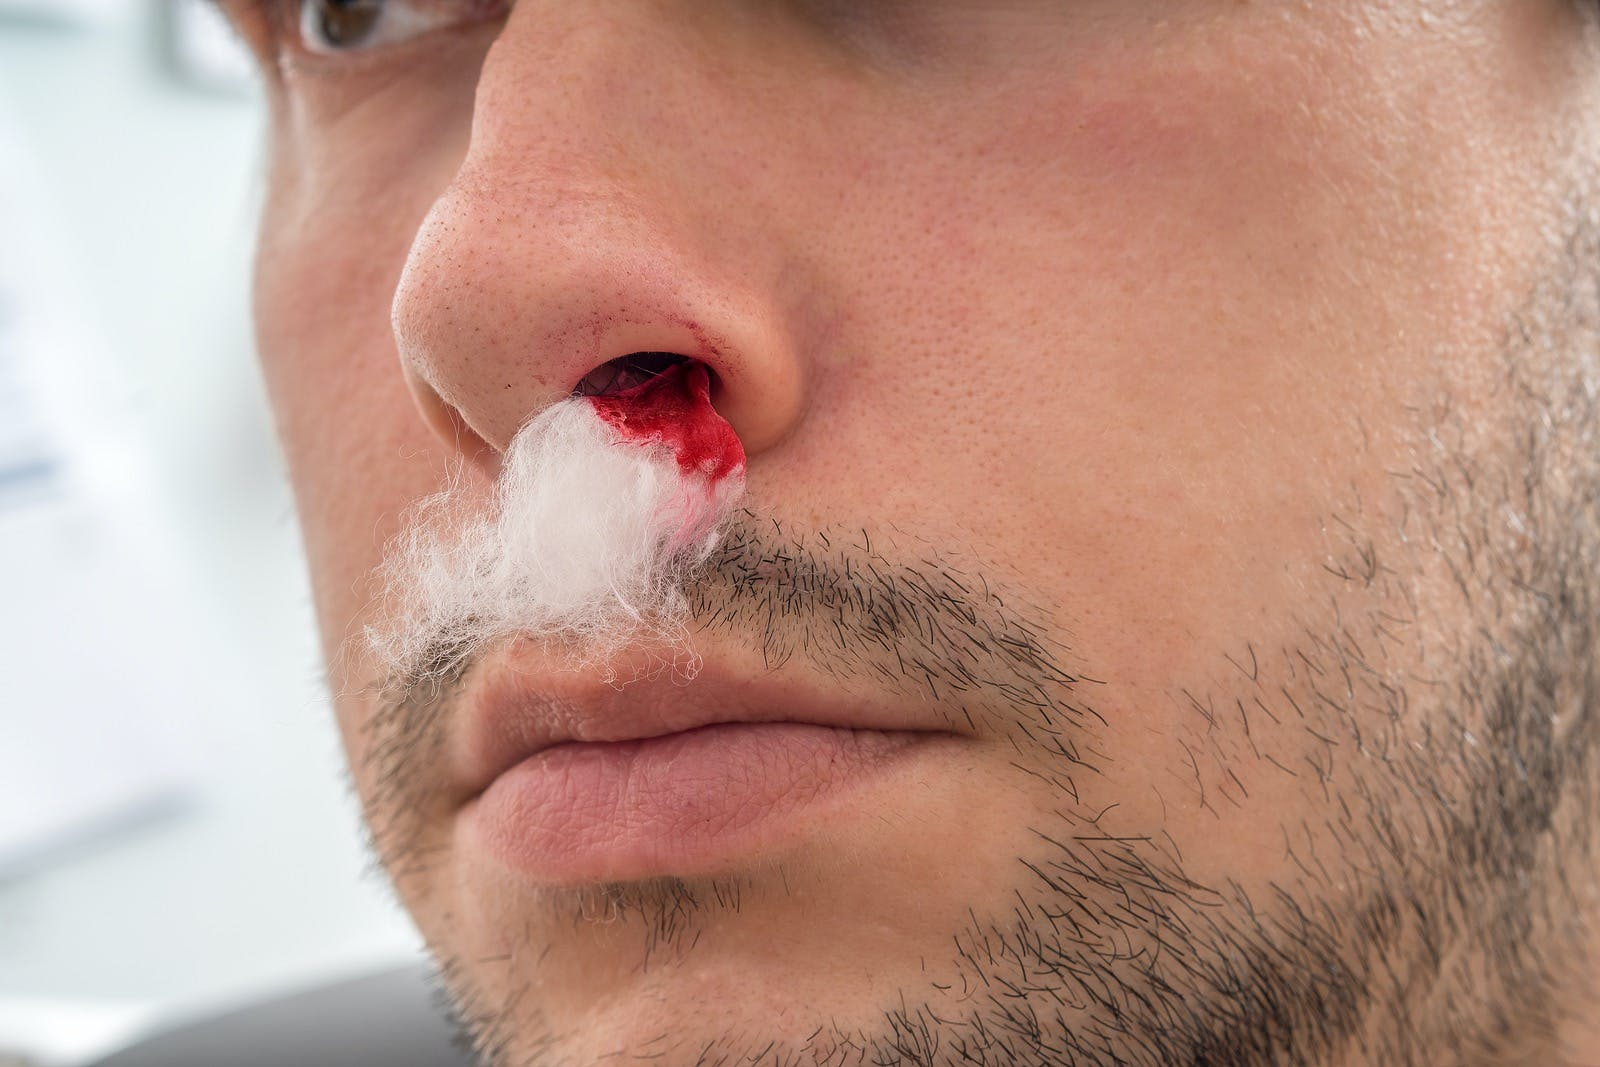 Man with bleeding nose and cotton in his nostril